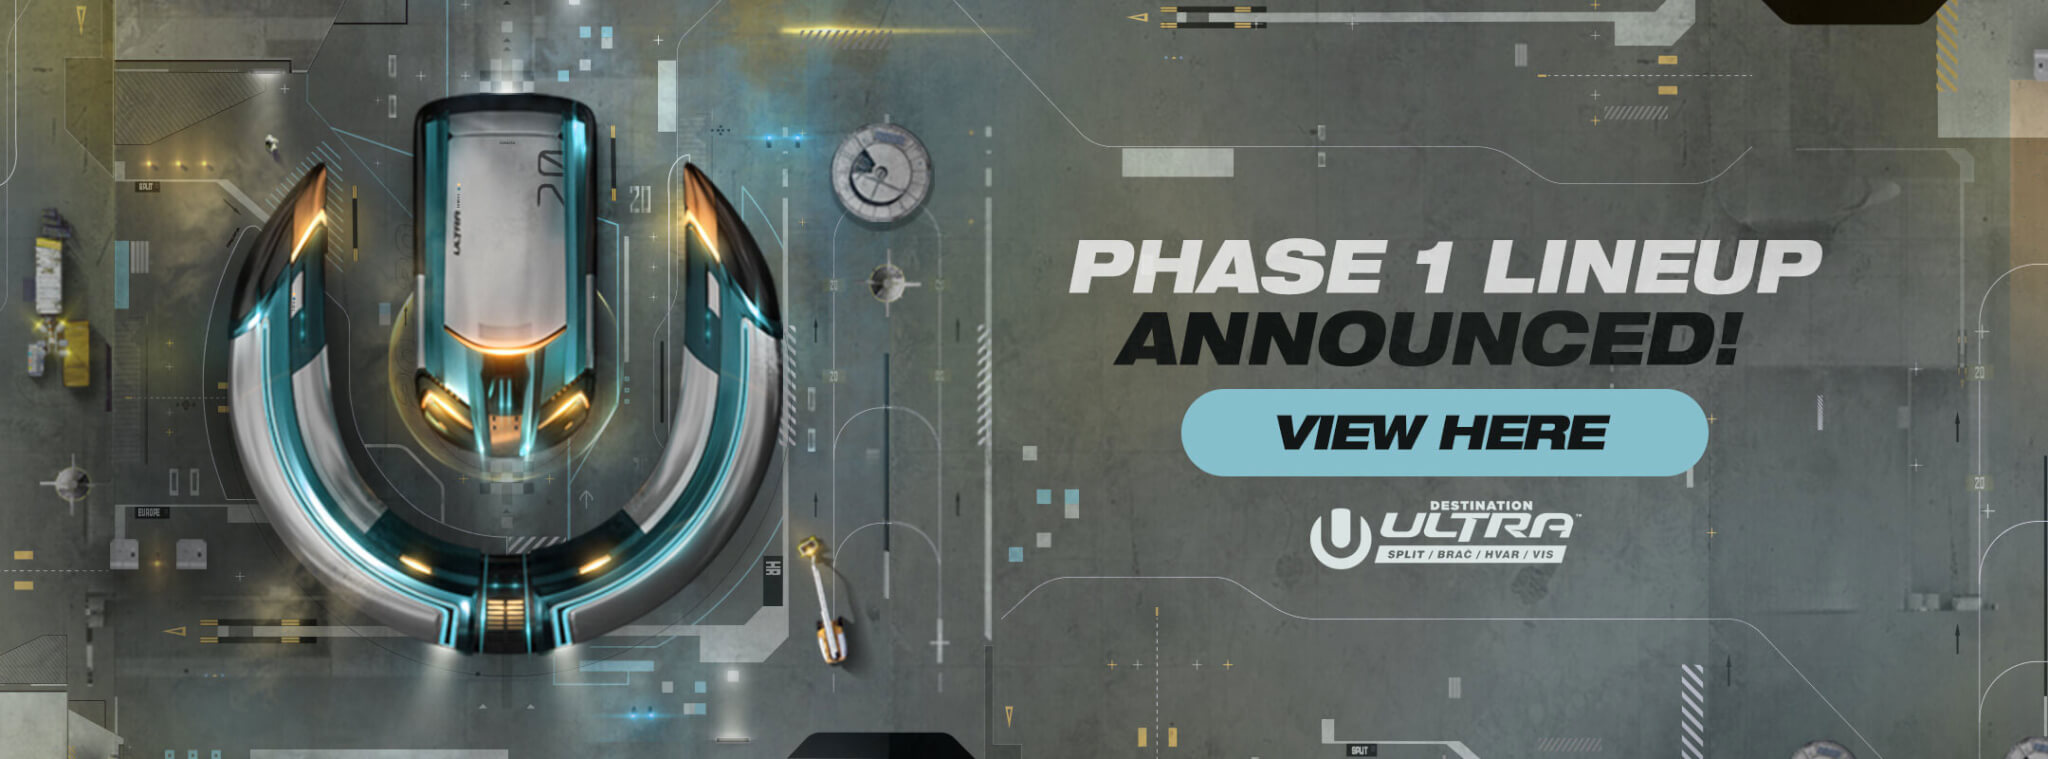 View the Ultra Europe 2020 Phase 1 Lineup